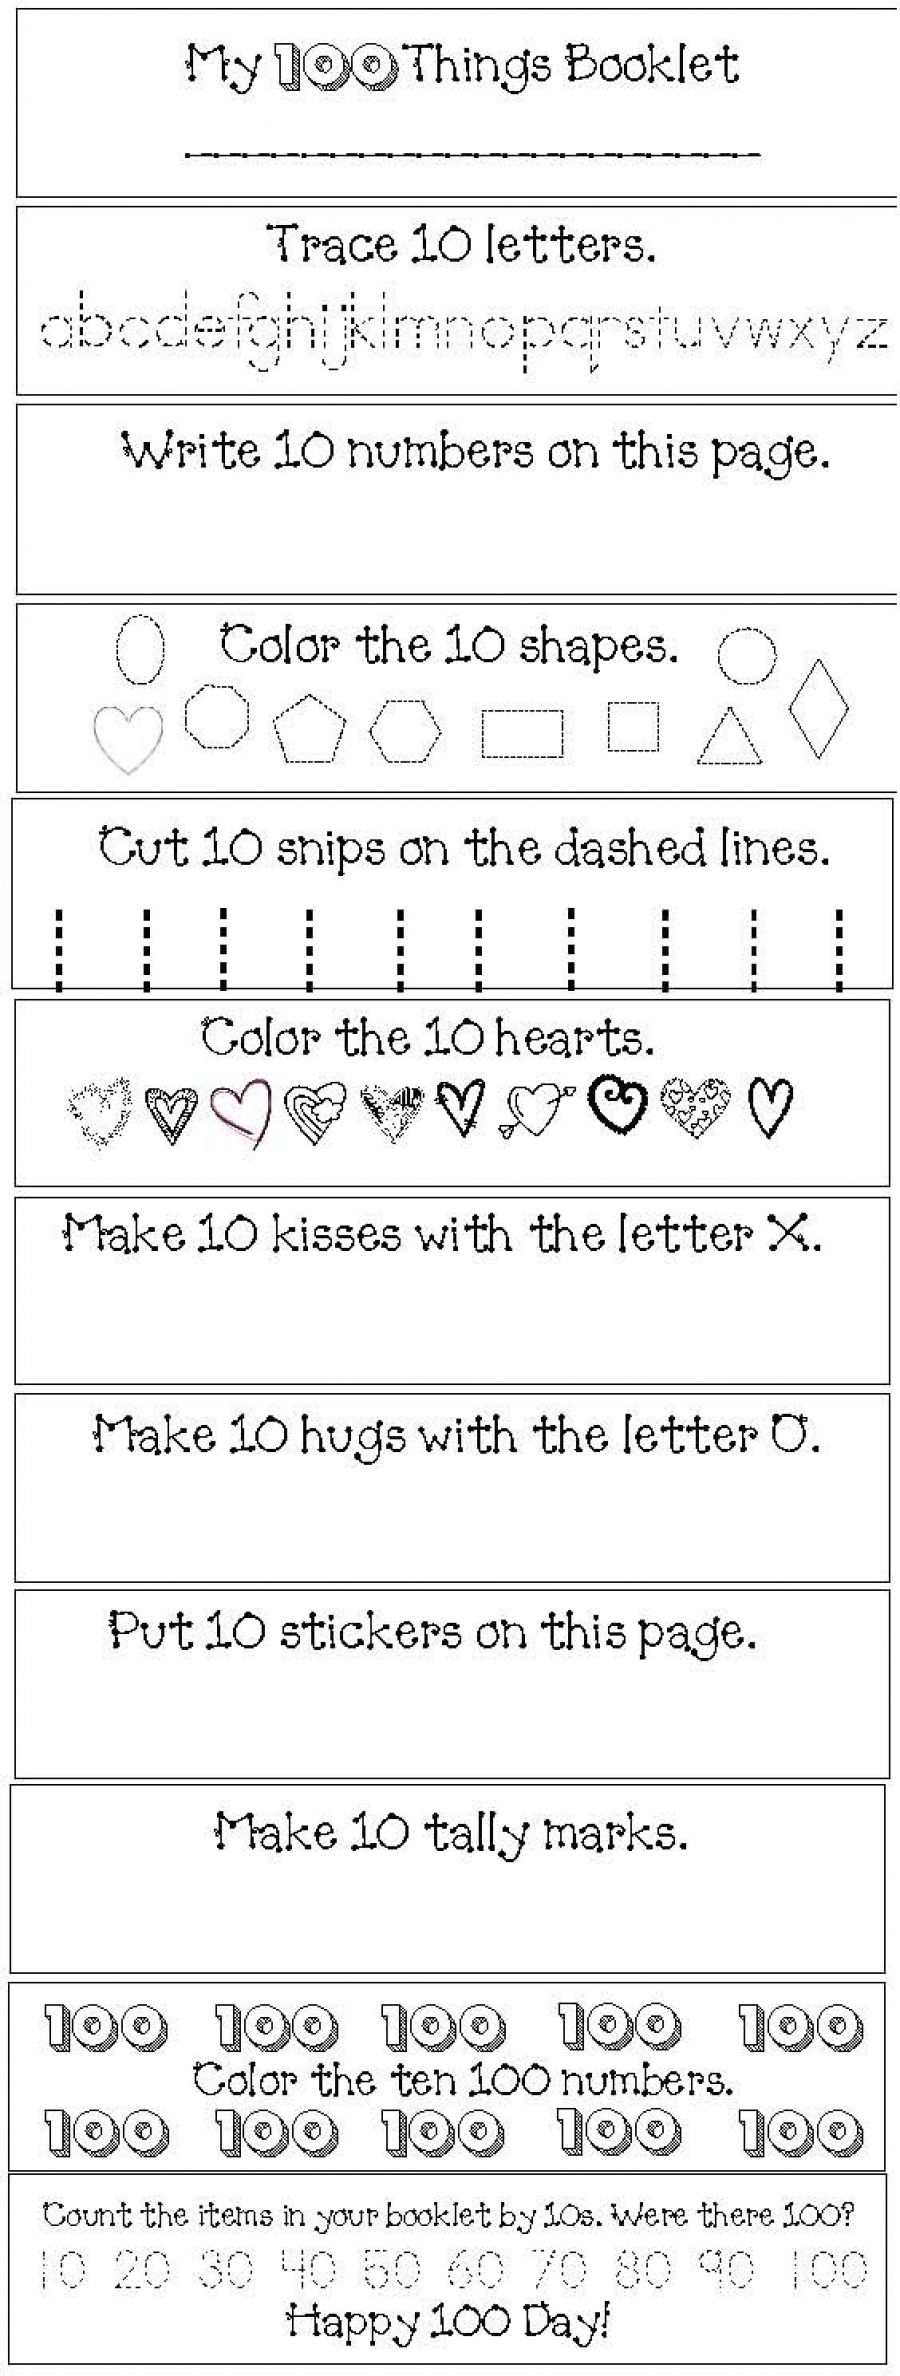 100th day of school worksheets for older students by patti mihalides.